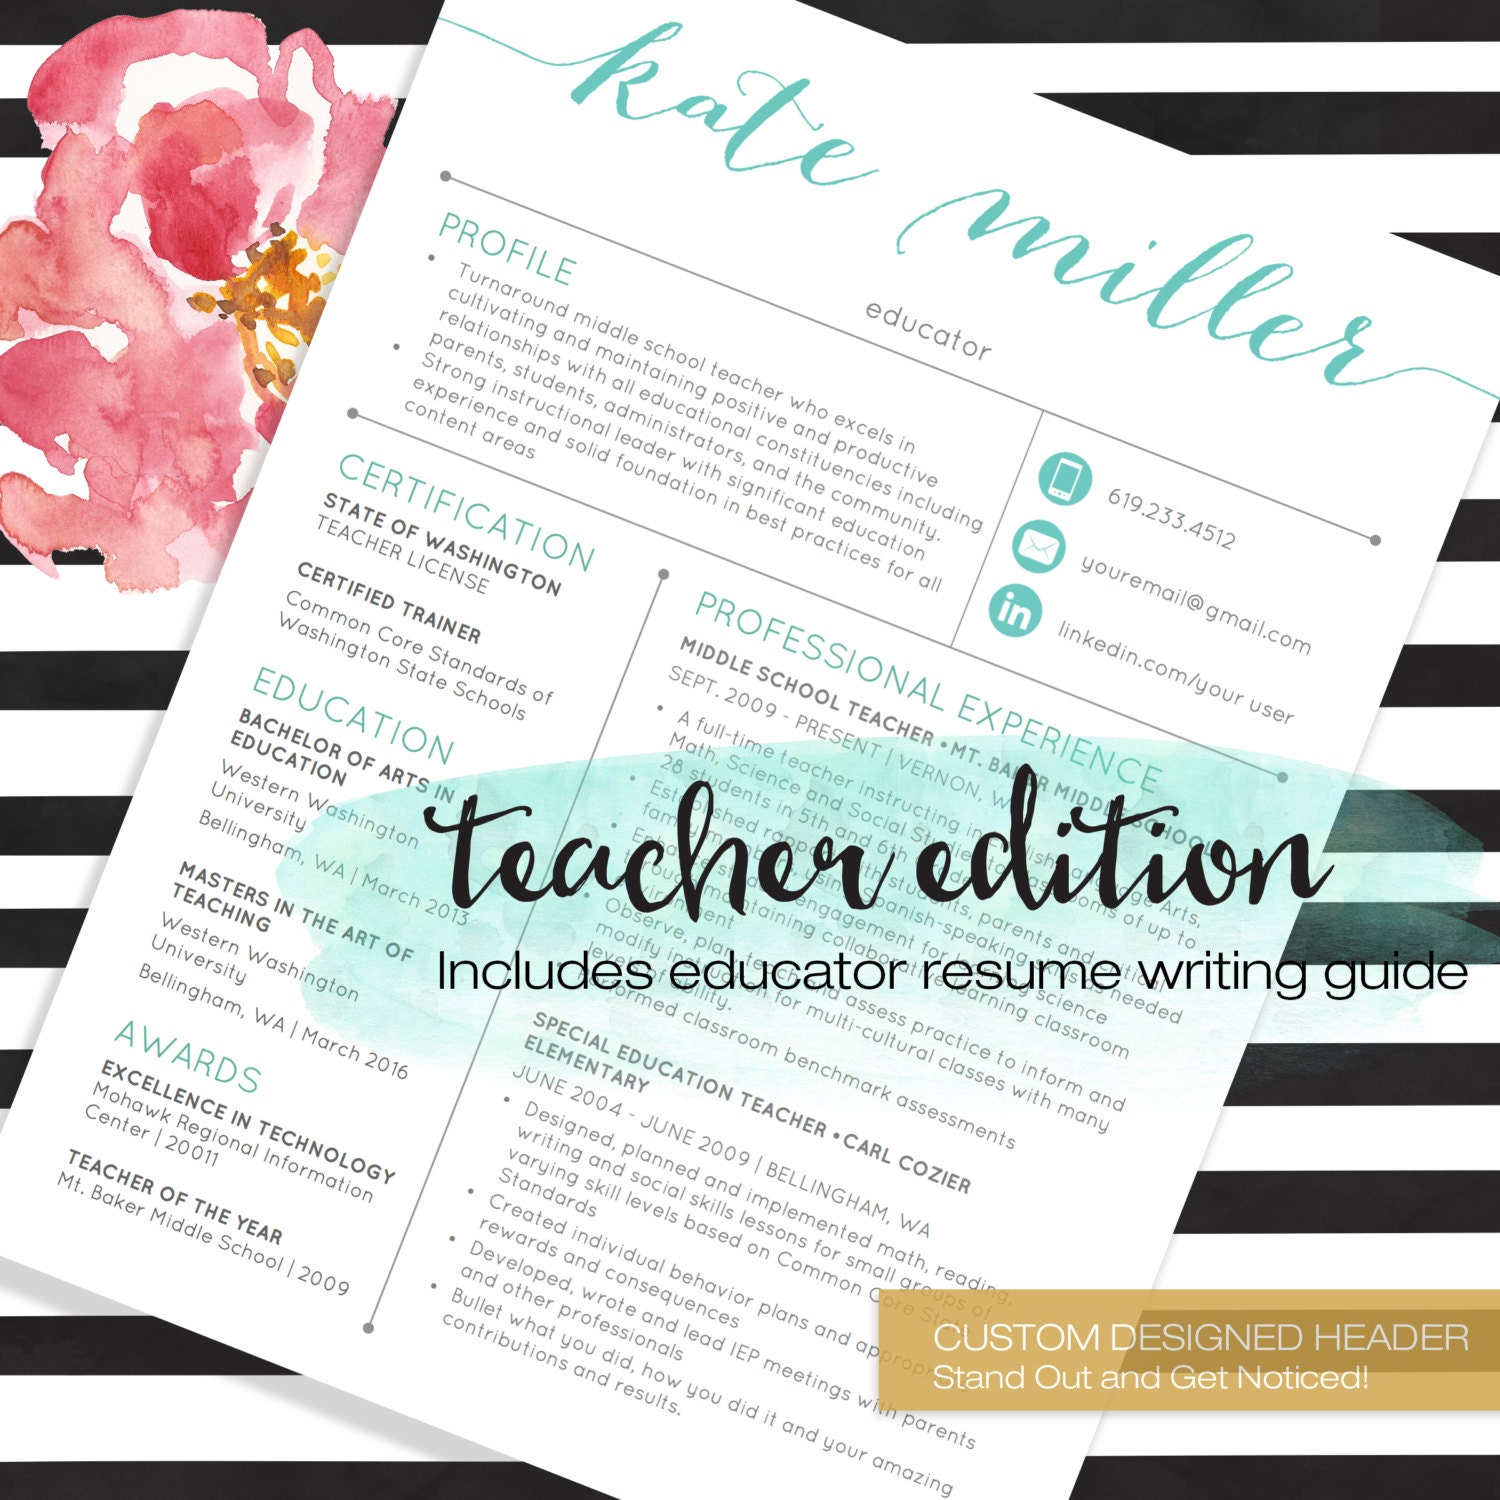 Cool Teacher Resume Template Etsy Images The Best Curriculum